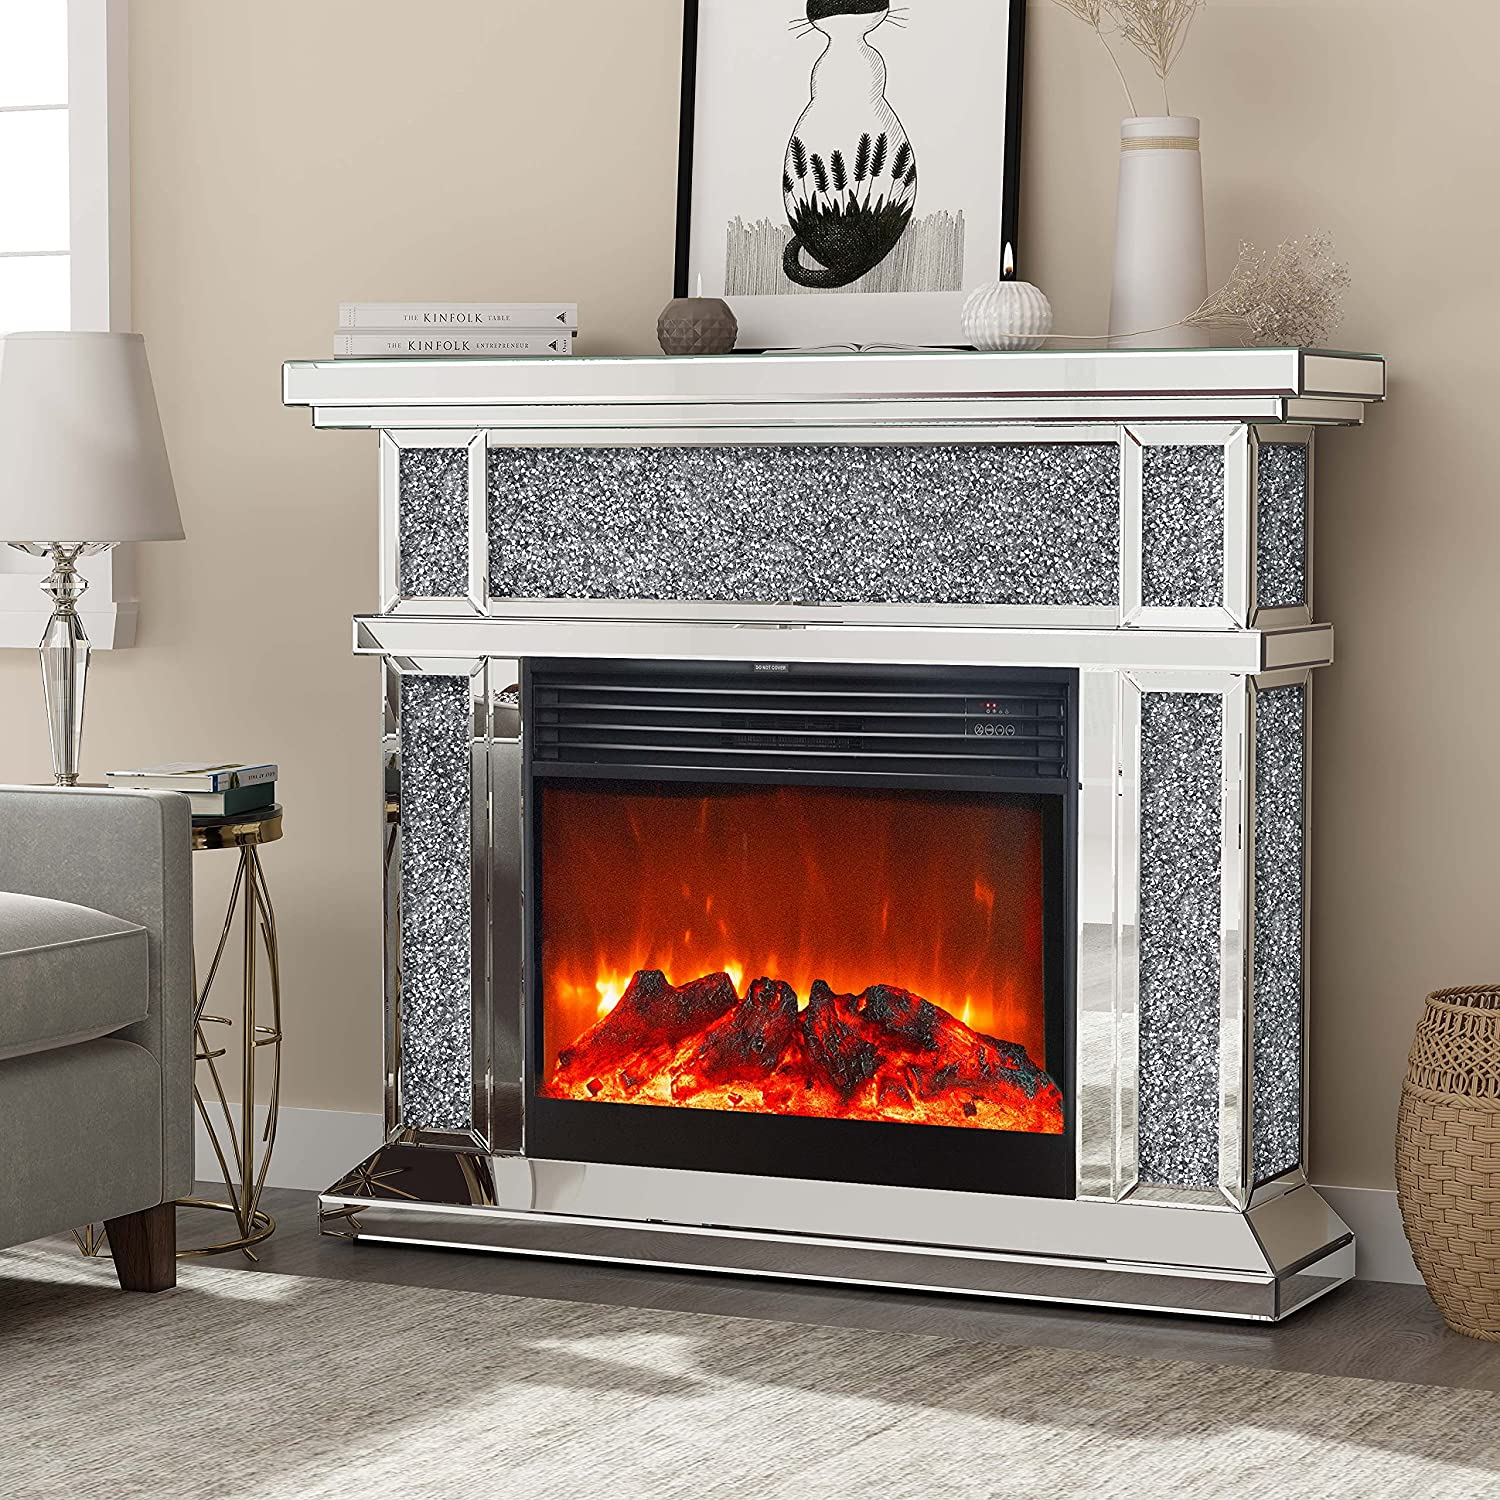 Buy Mirrored Electric Fireplace, Fireplace Mantel Freestanding ...